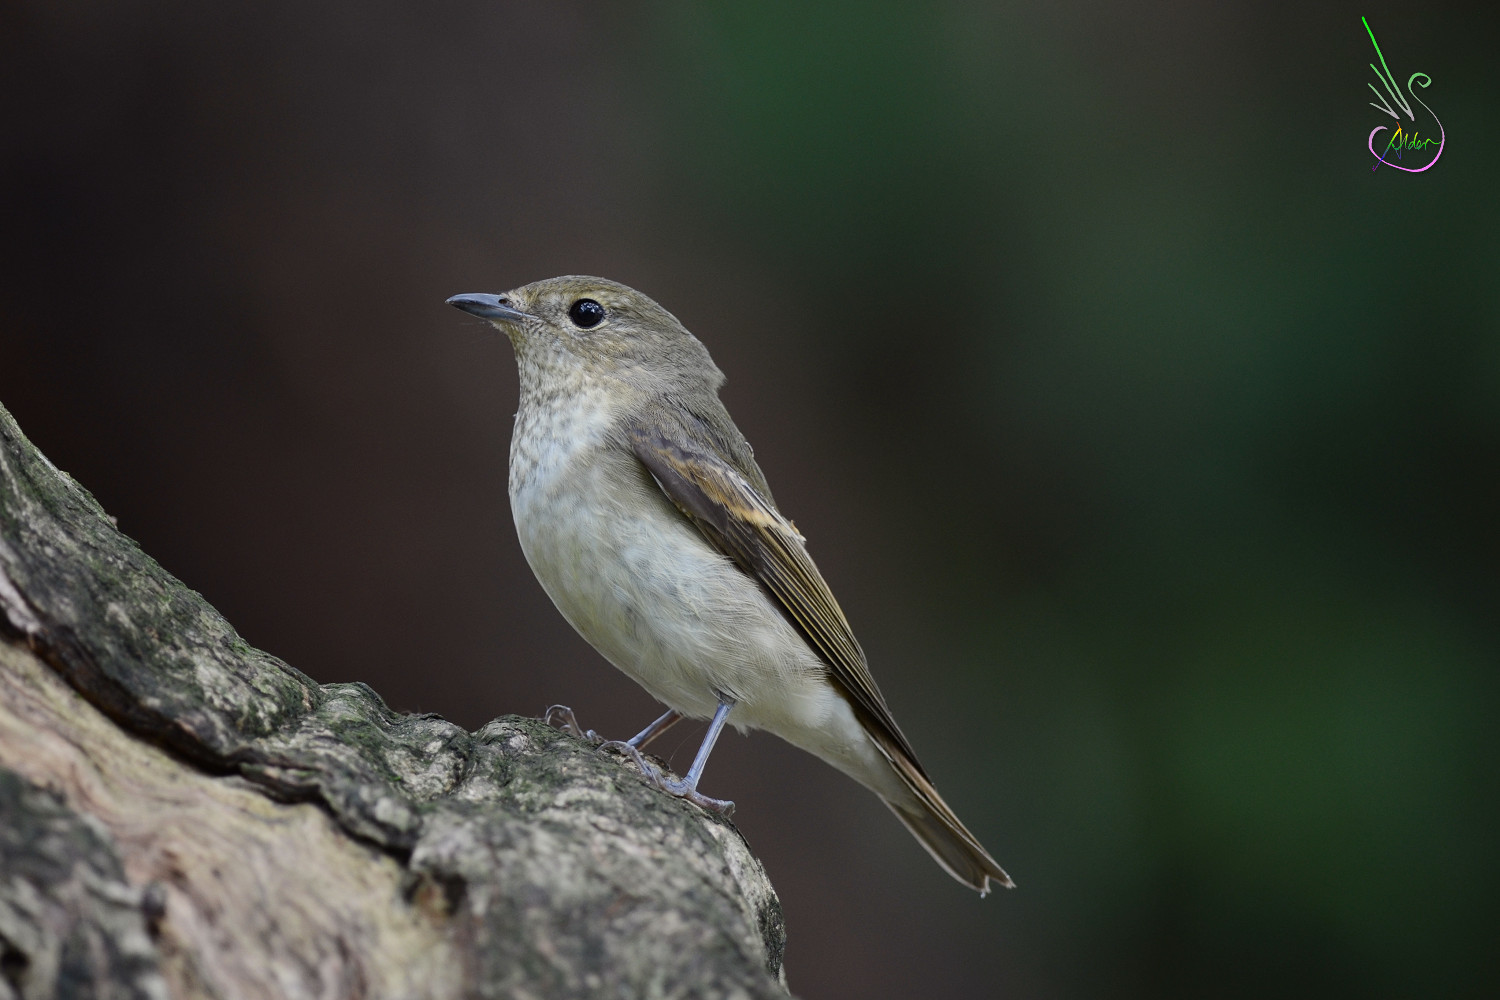 Narcissus_Flycatcher_6368